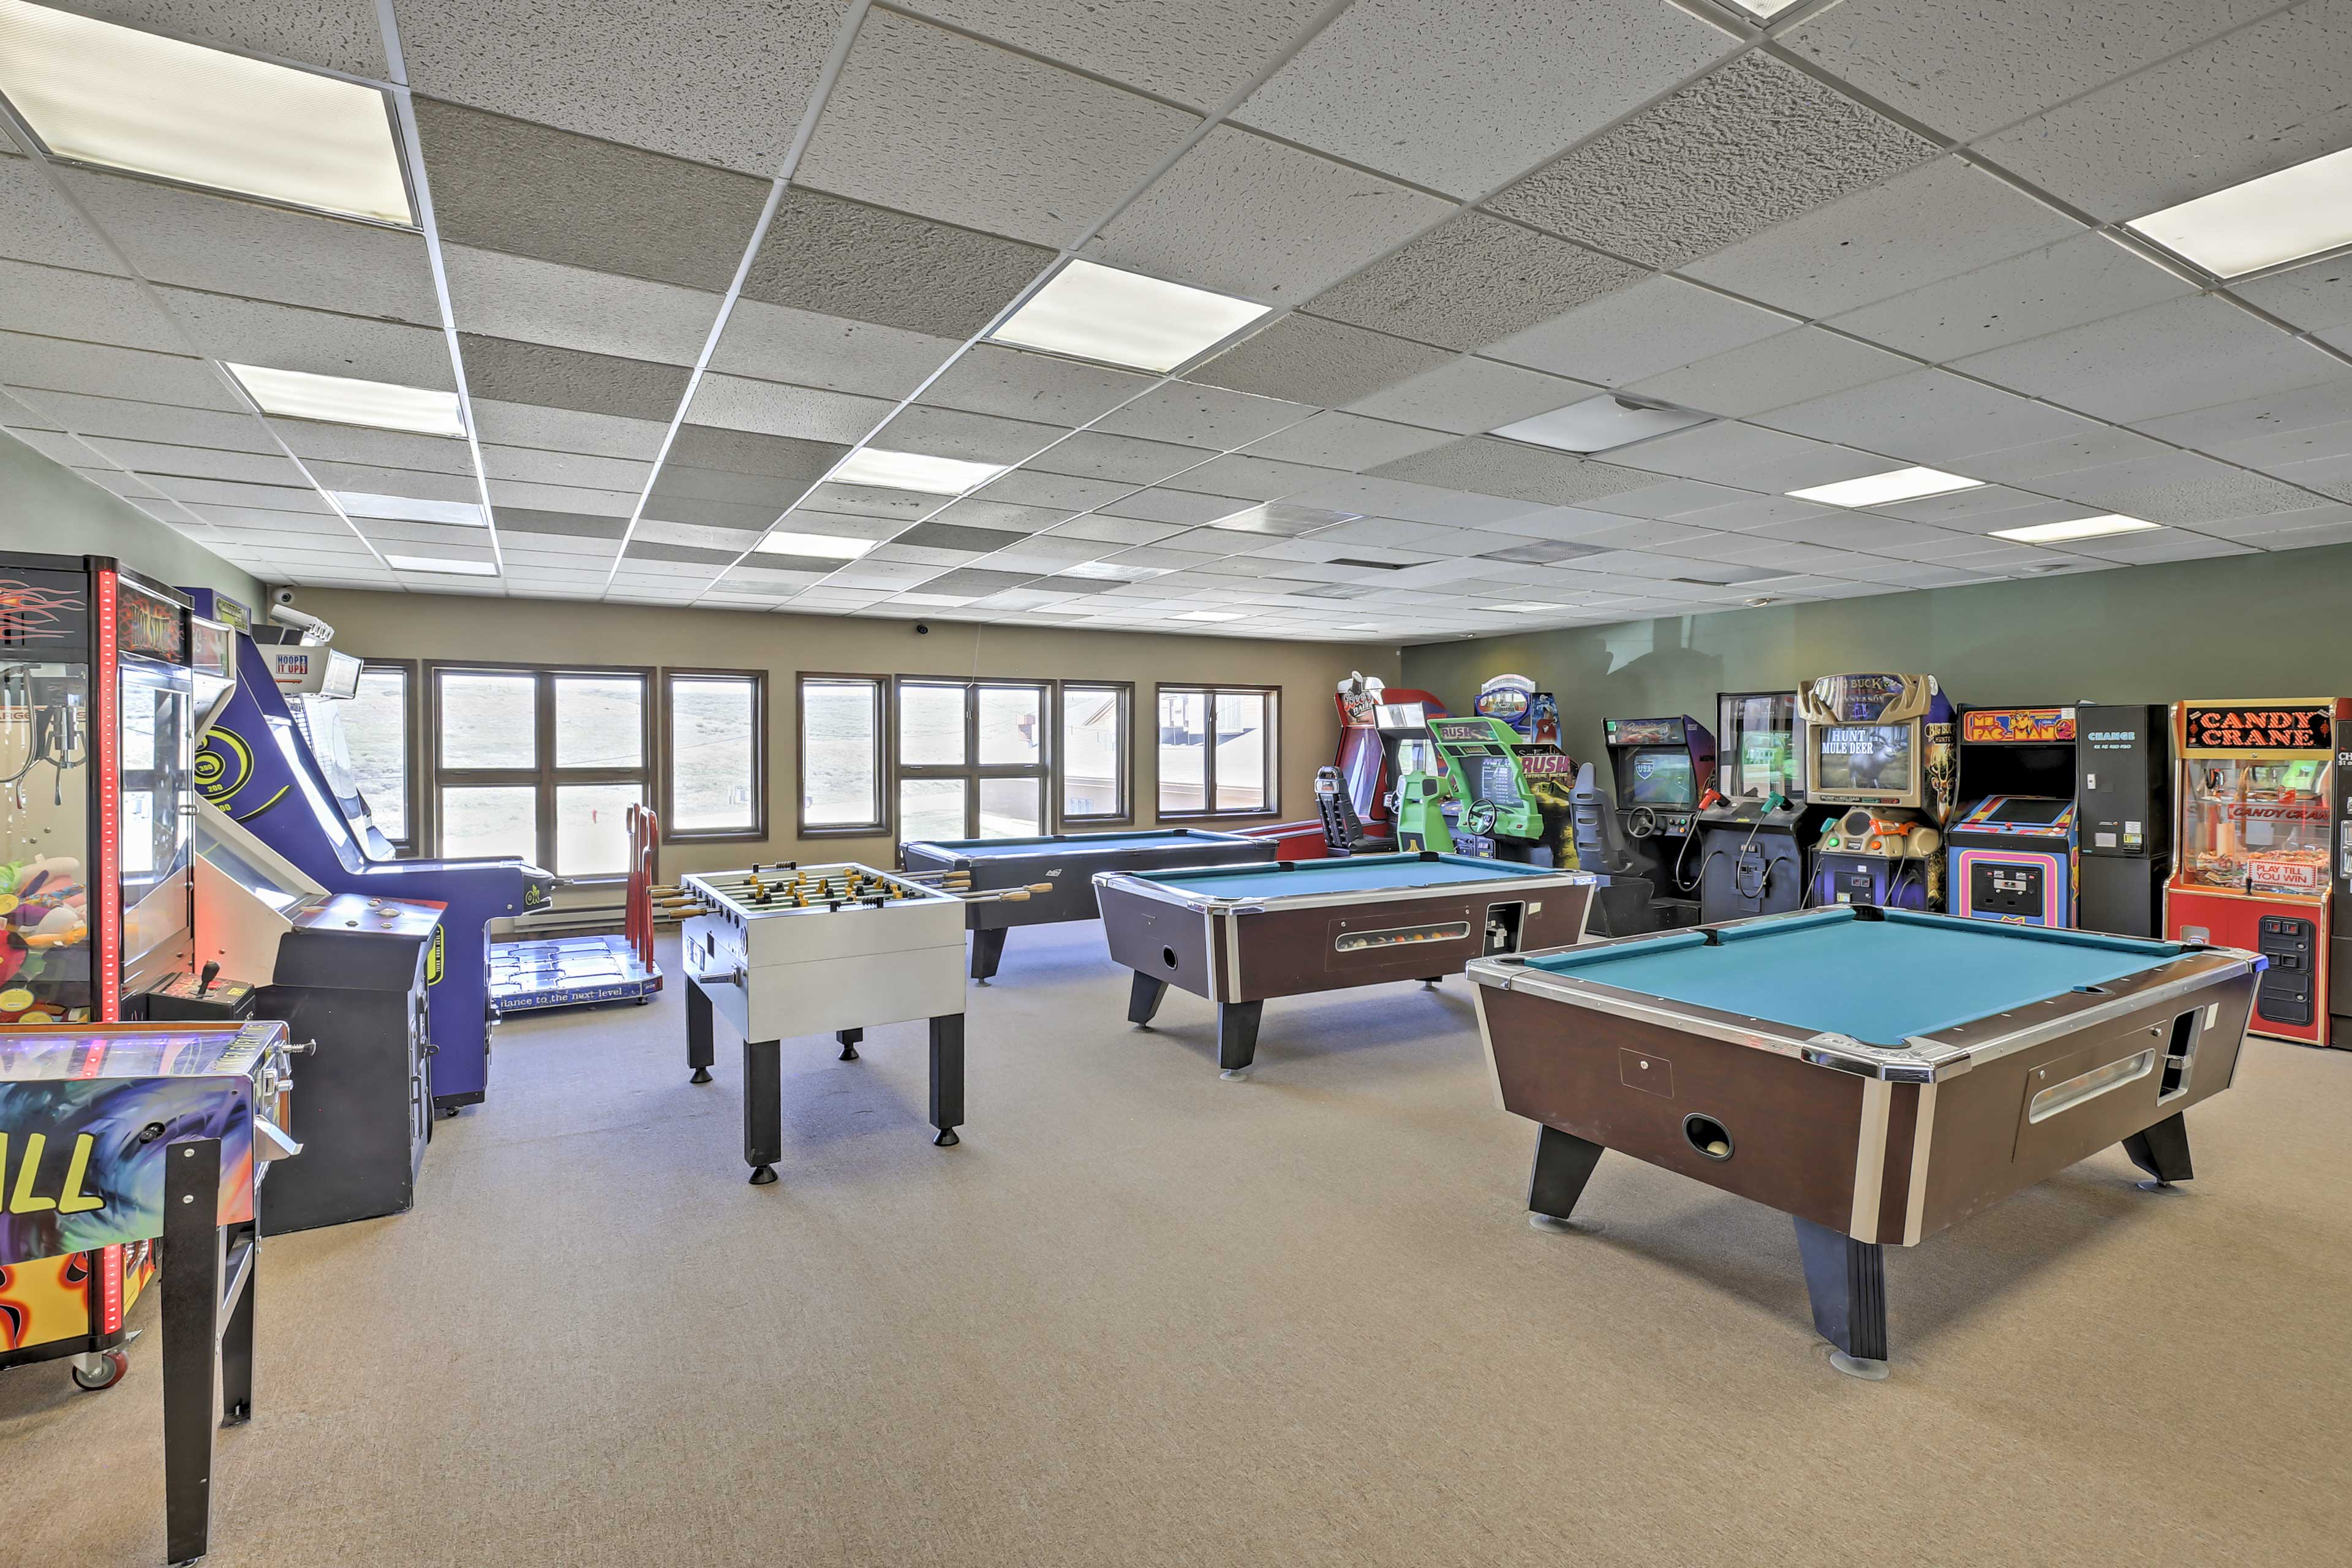 The kids will enjoy the game room.